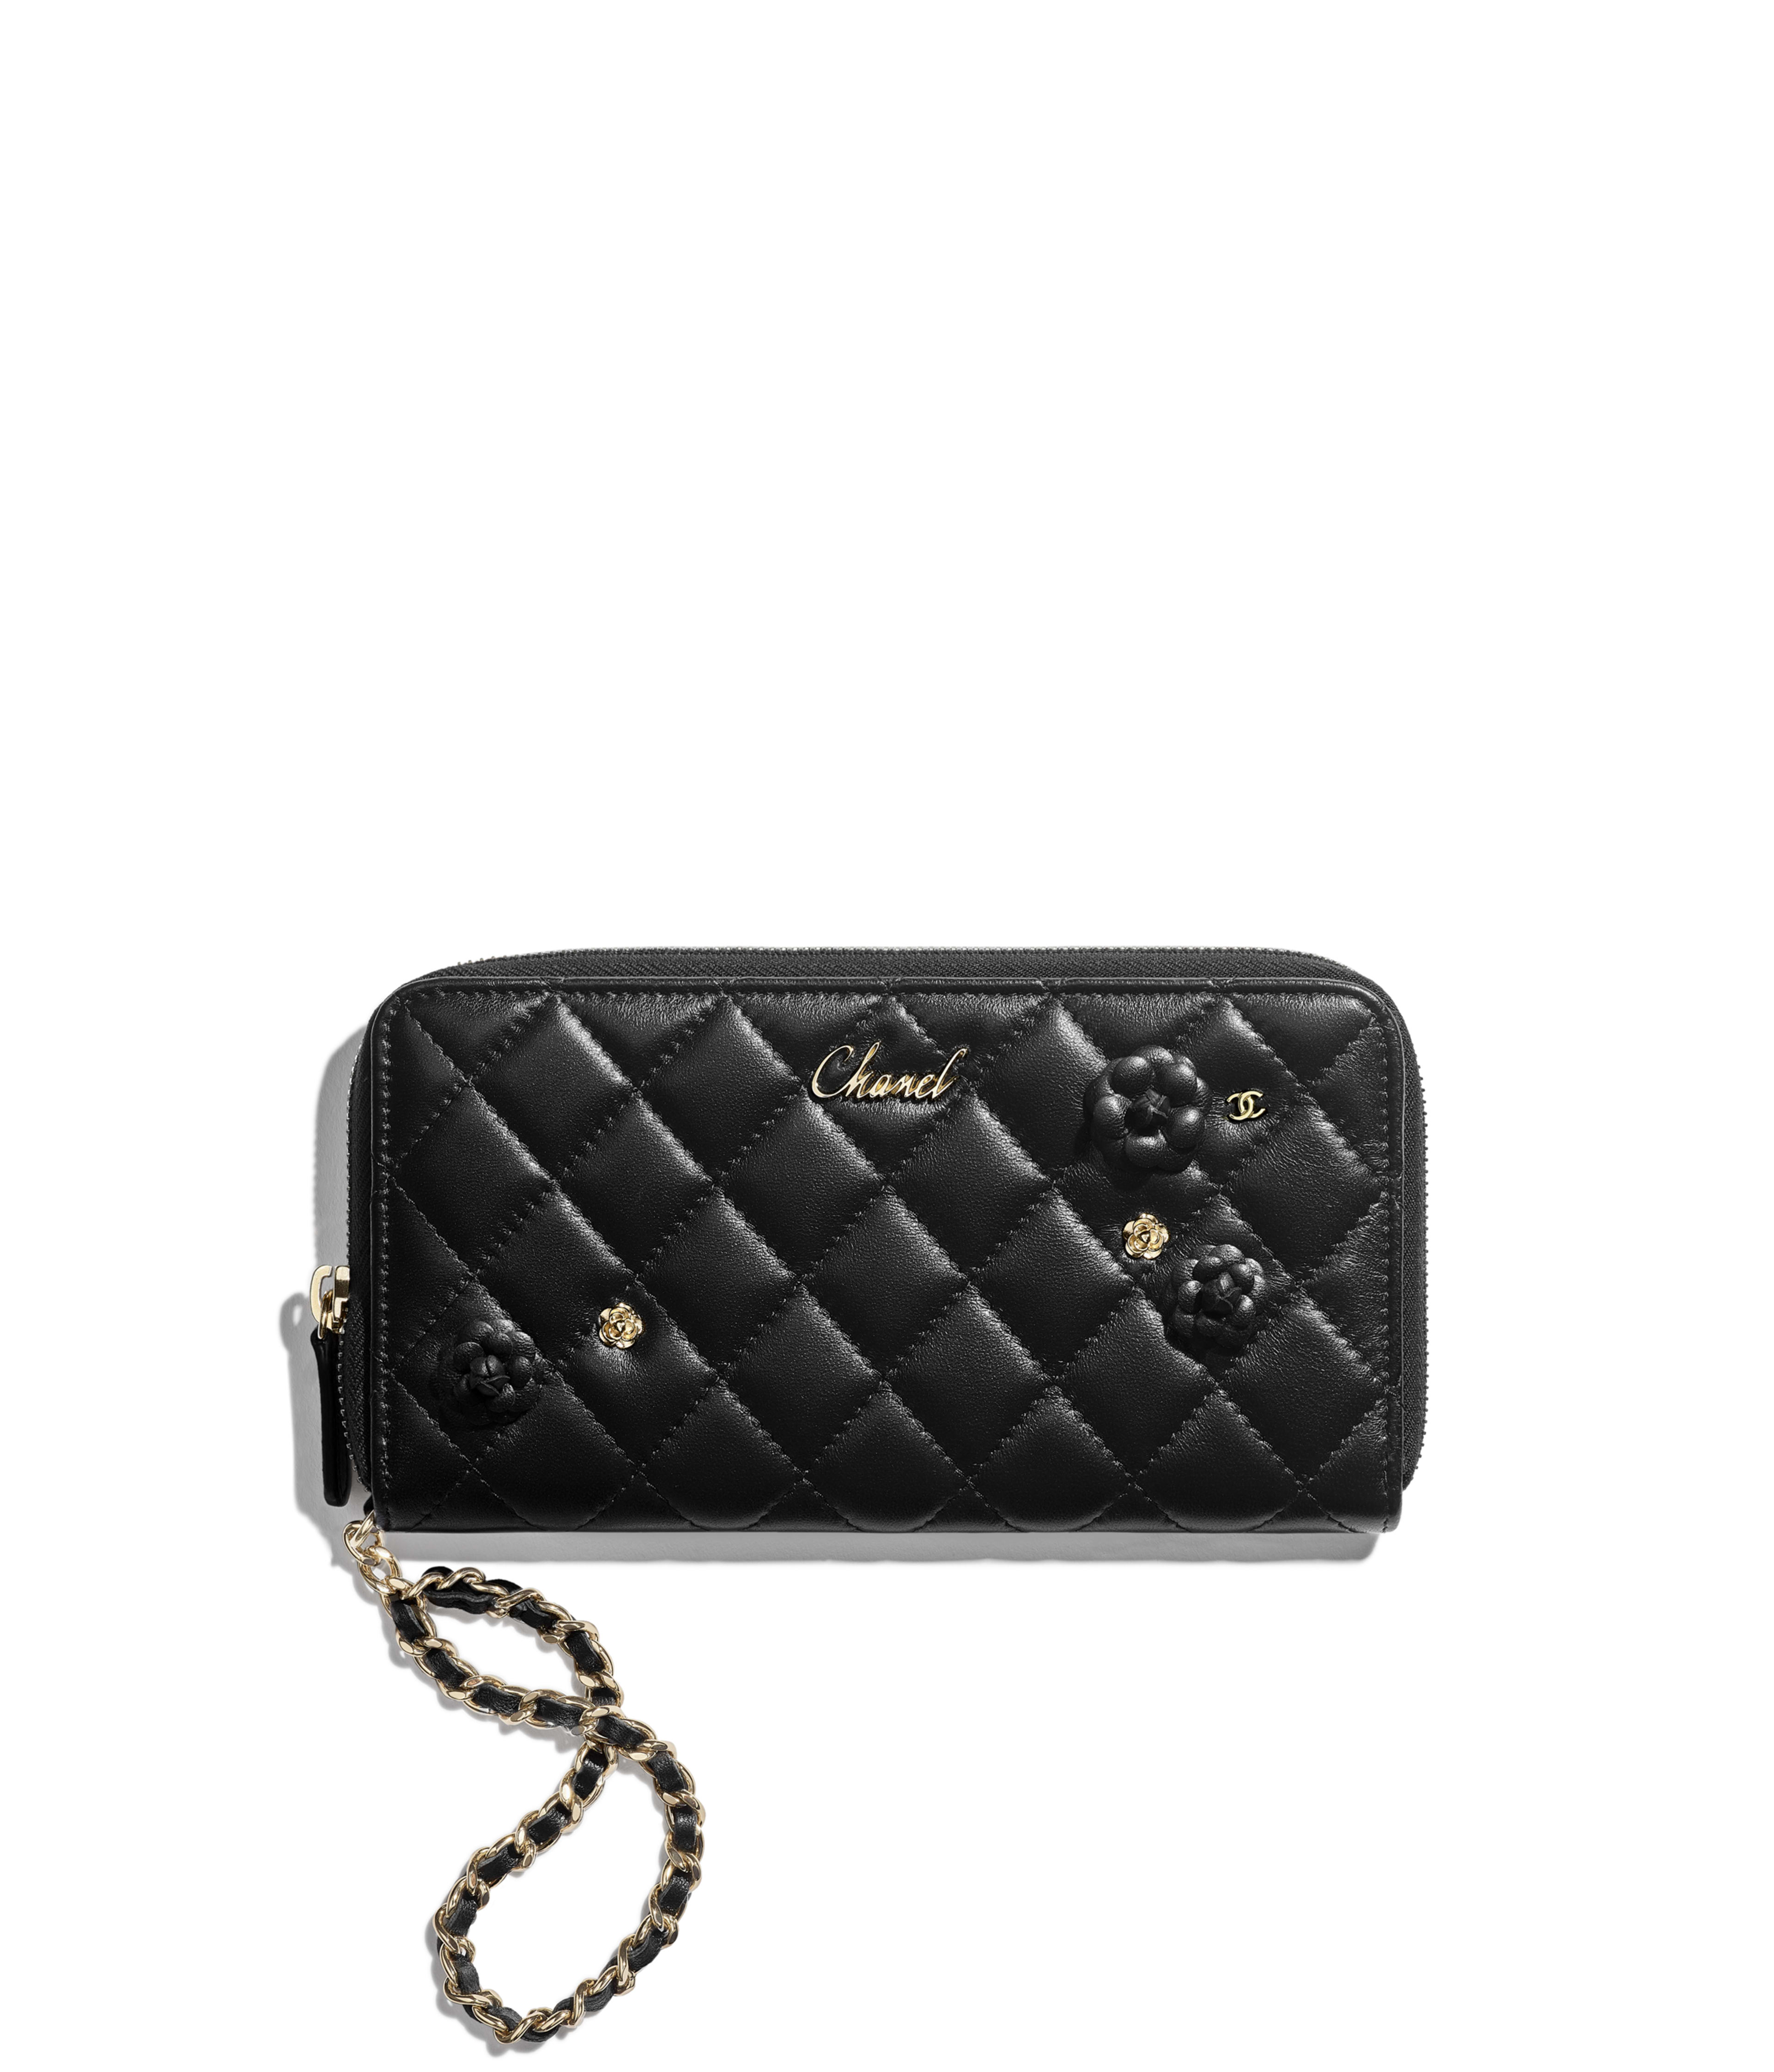 e50a75c1ba167d Zipped Wallet with Handle Lambskin & Gold-Tone Metal, Black Ref.  AP0150Y0405994305